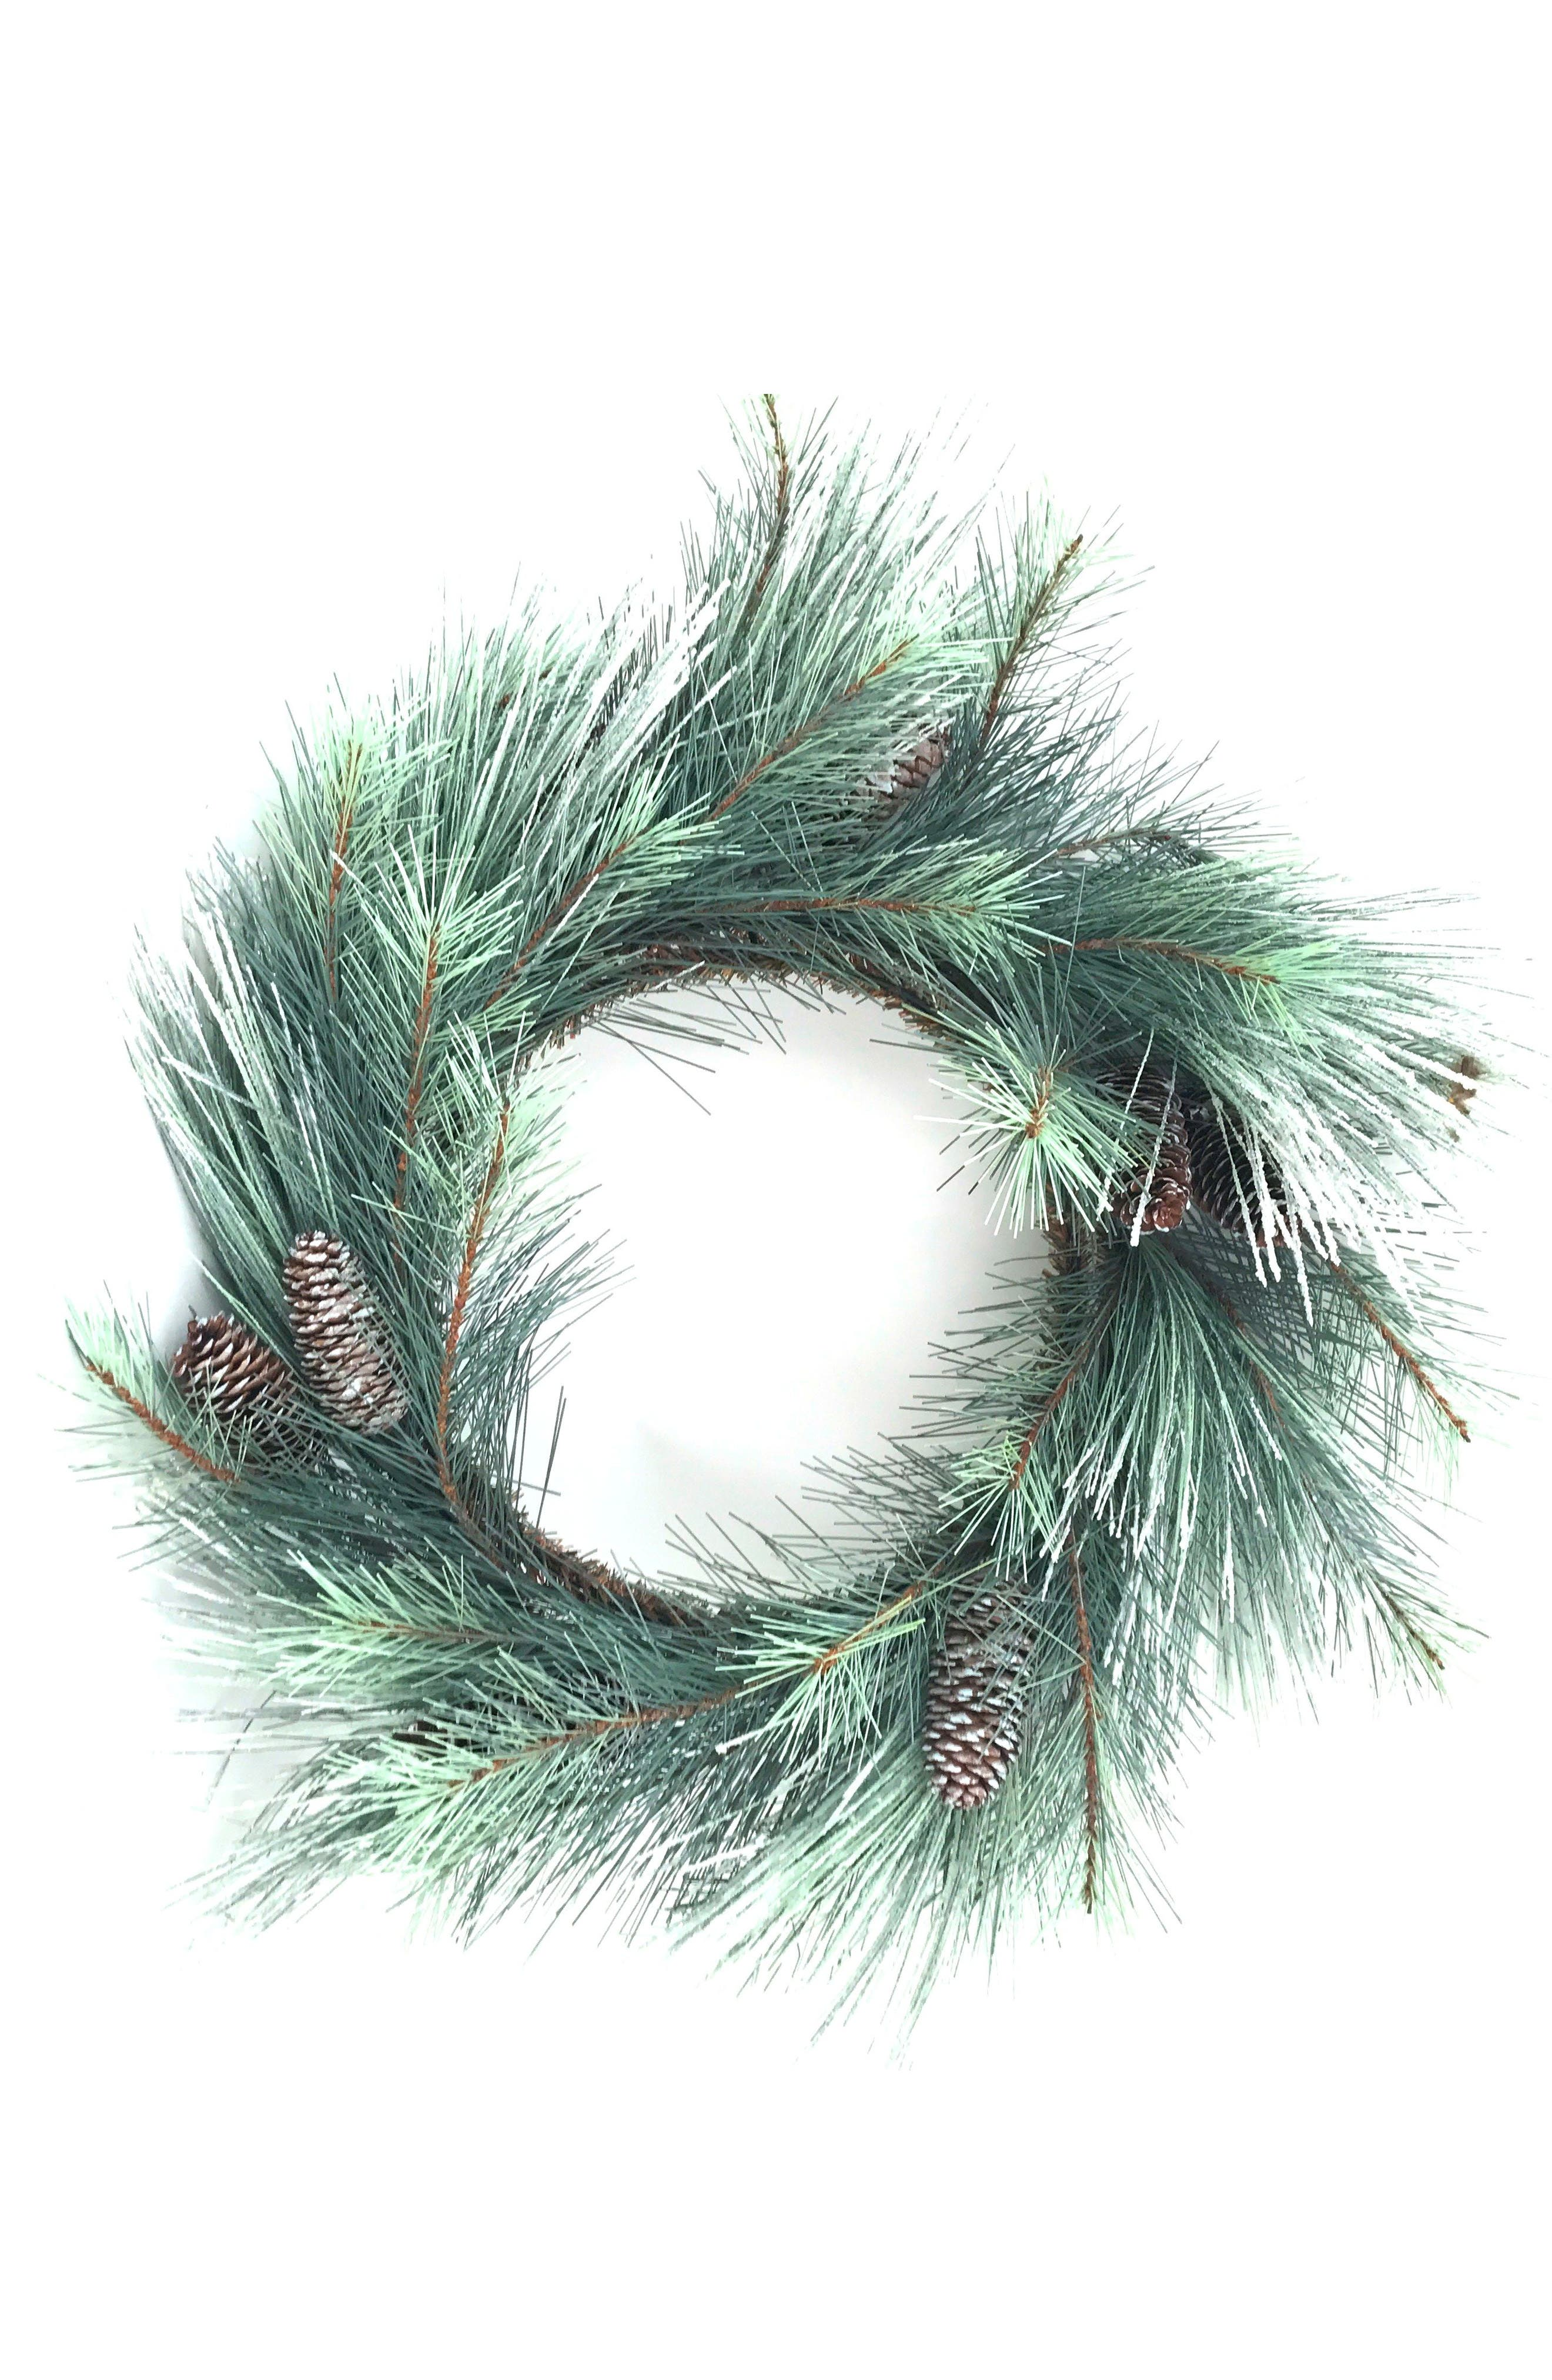 Alternate Image 1 Selected - Arty Pine Wreath